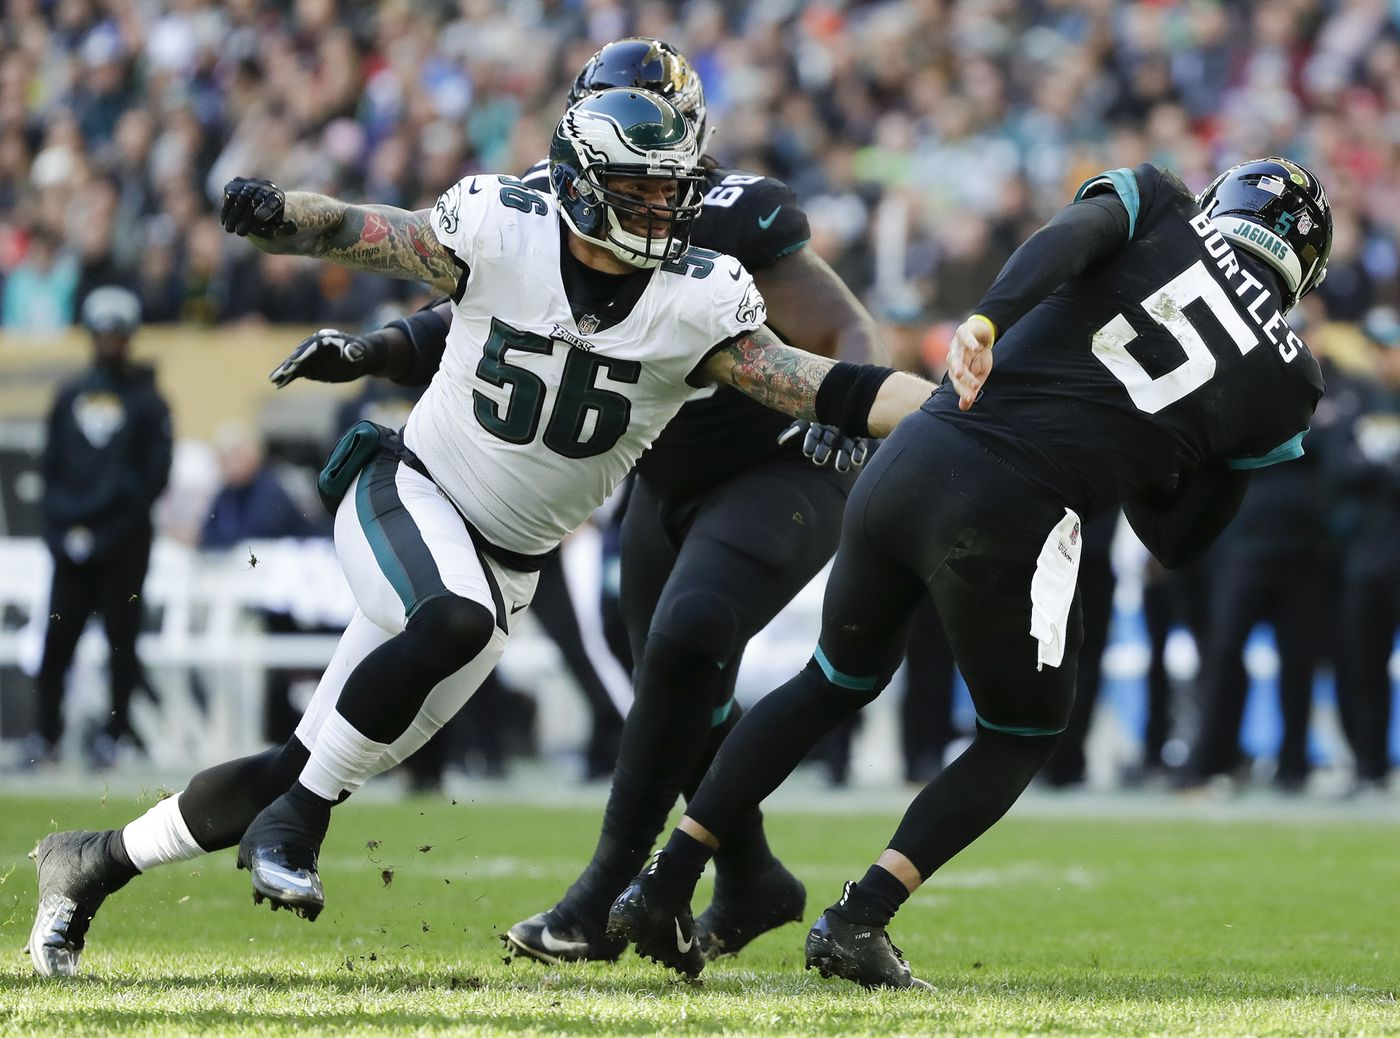 ceced41c1 Eagles defensive end Chris Long sacks Jaguars quarterback Blake Bortles  during the first half of the